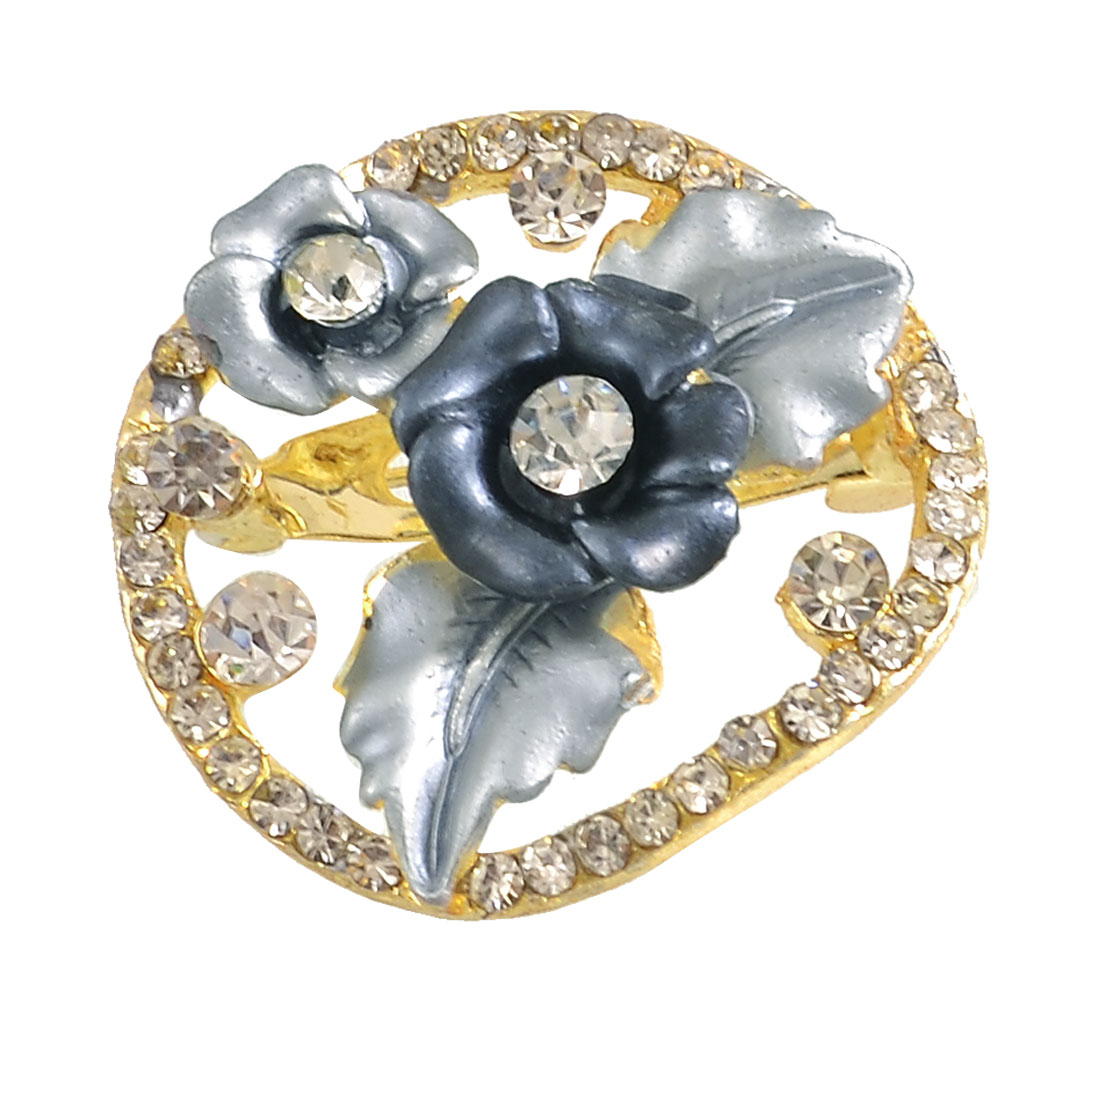 Lady Dark Blue Flower Centering Rhinestone Ring Safety Pin Brooch Broach Gift